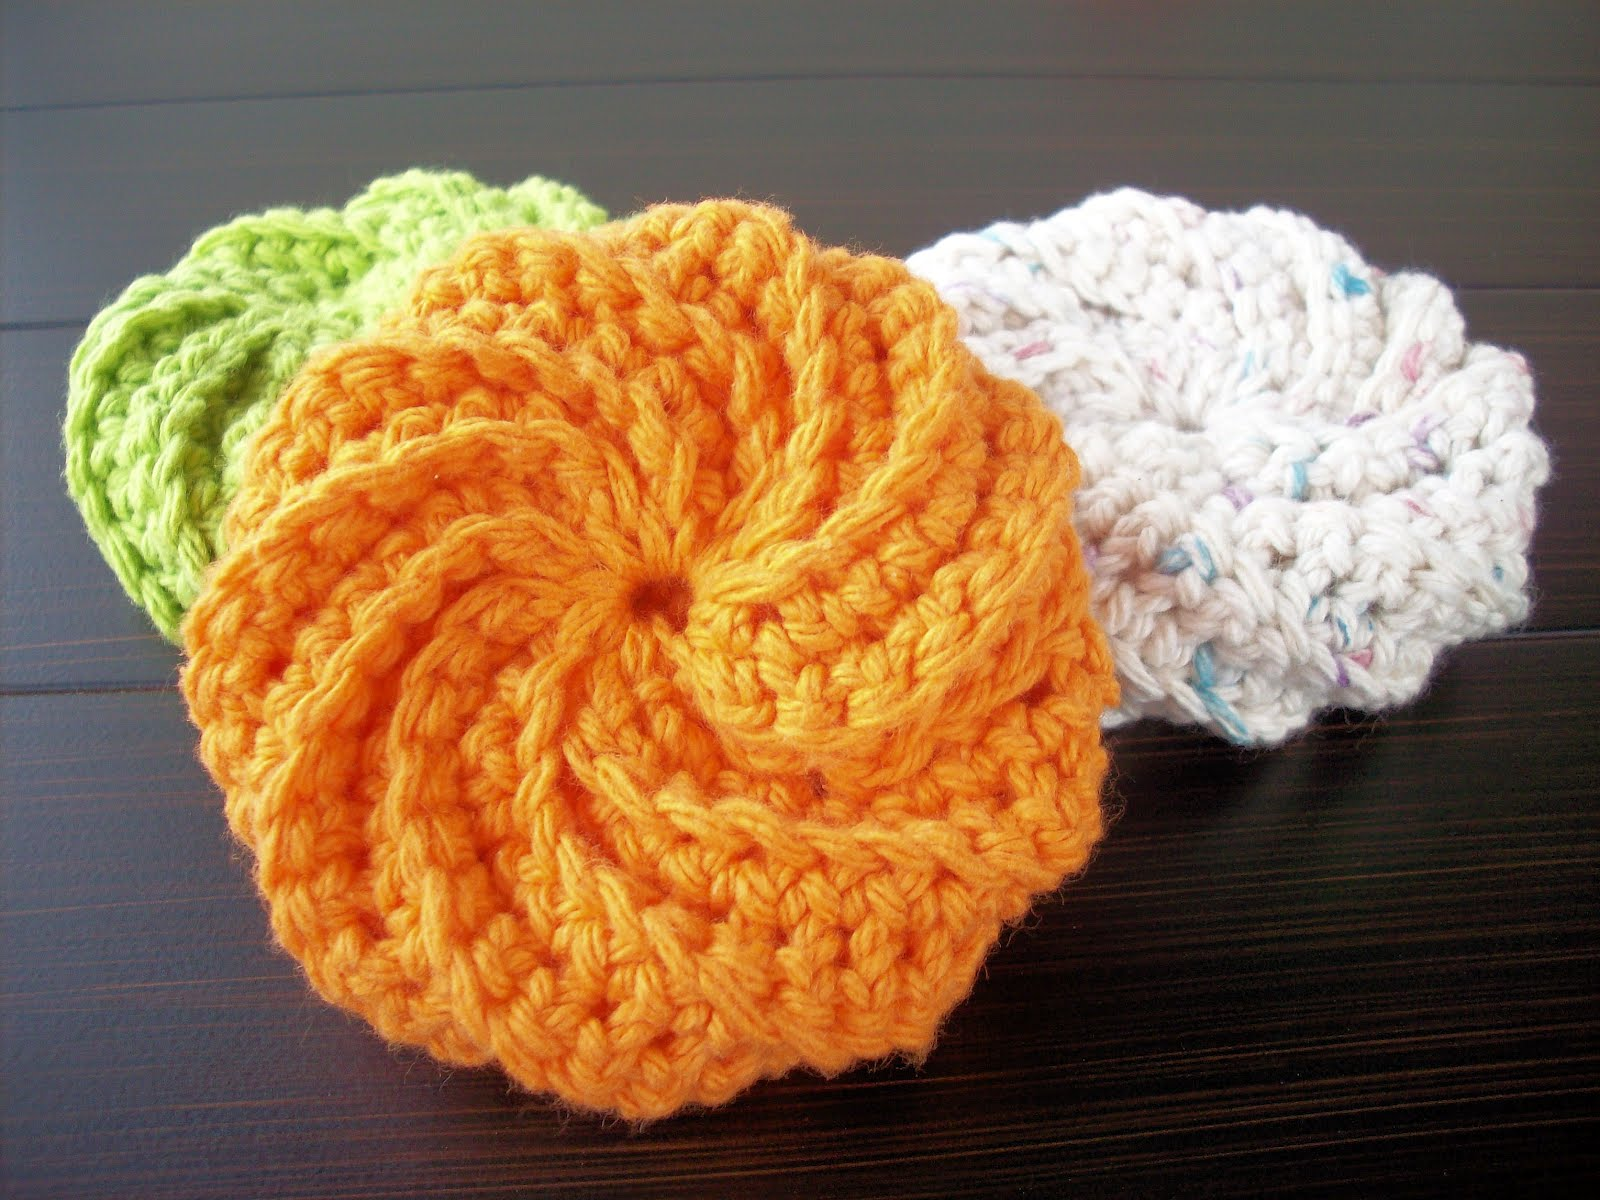 Crocheting Scrubbies With Netting : How+To+Crochet+Scrubbies Crochet Scrubbies